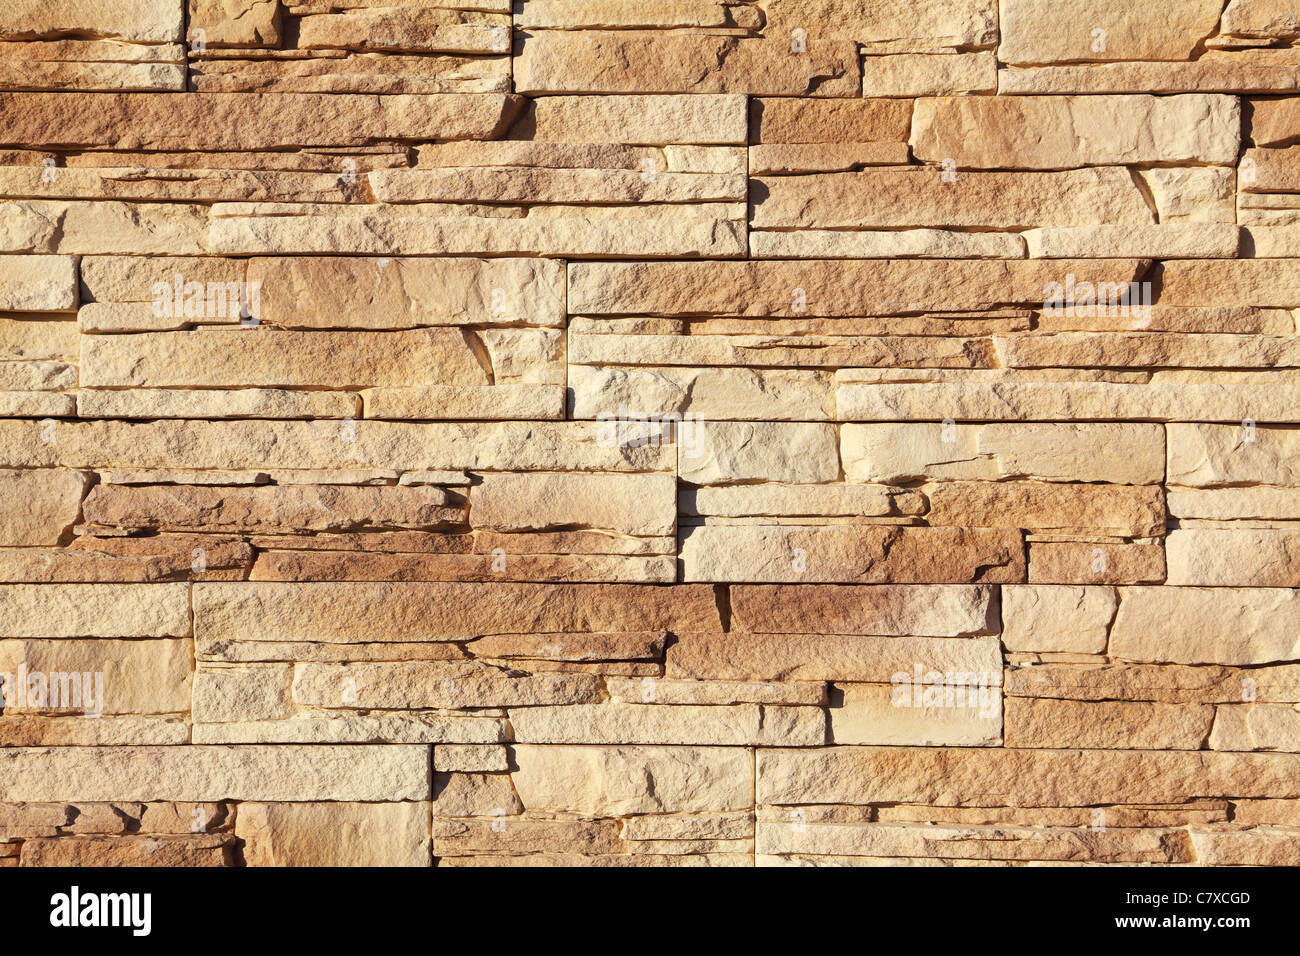 Stone Wall Stock Photos & Stone Wall Stock Images - Alamy